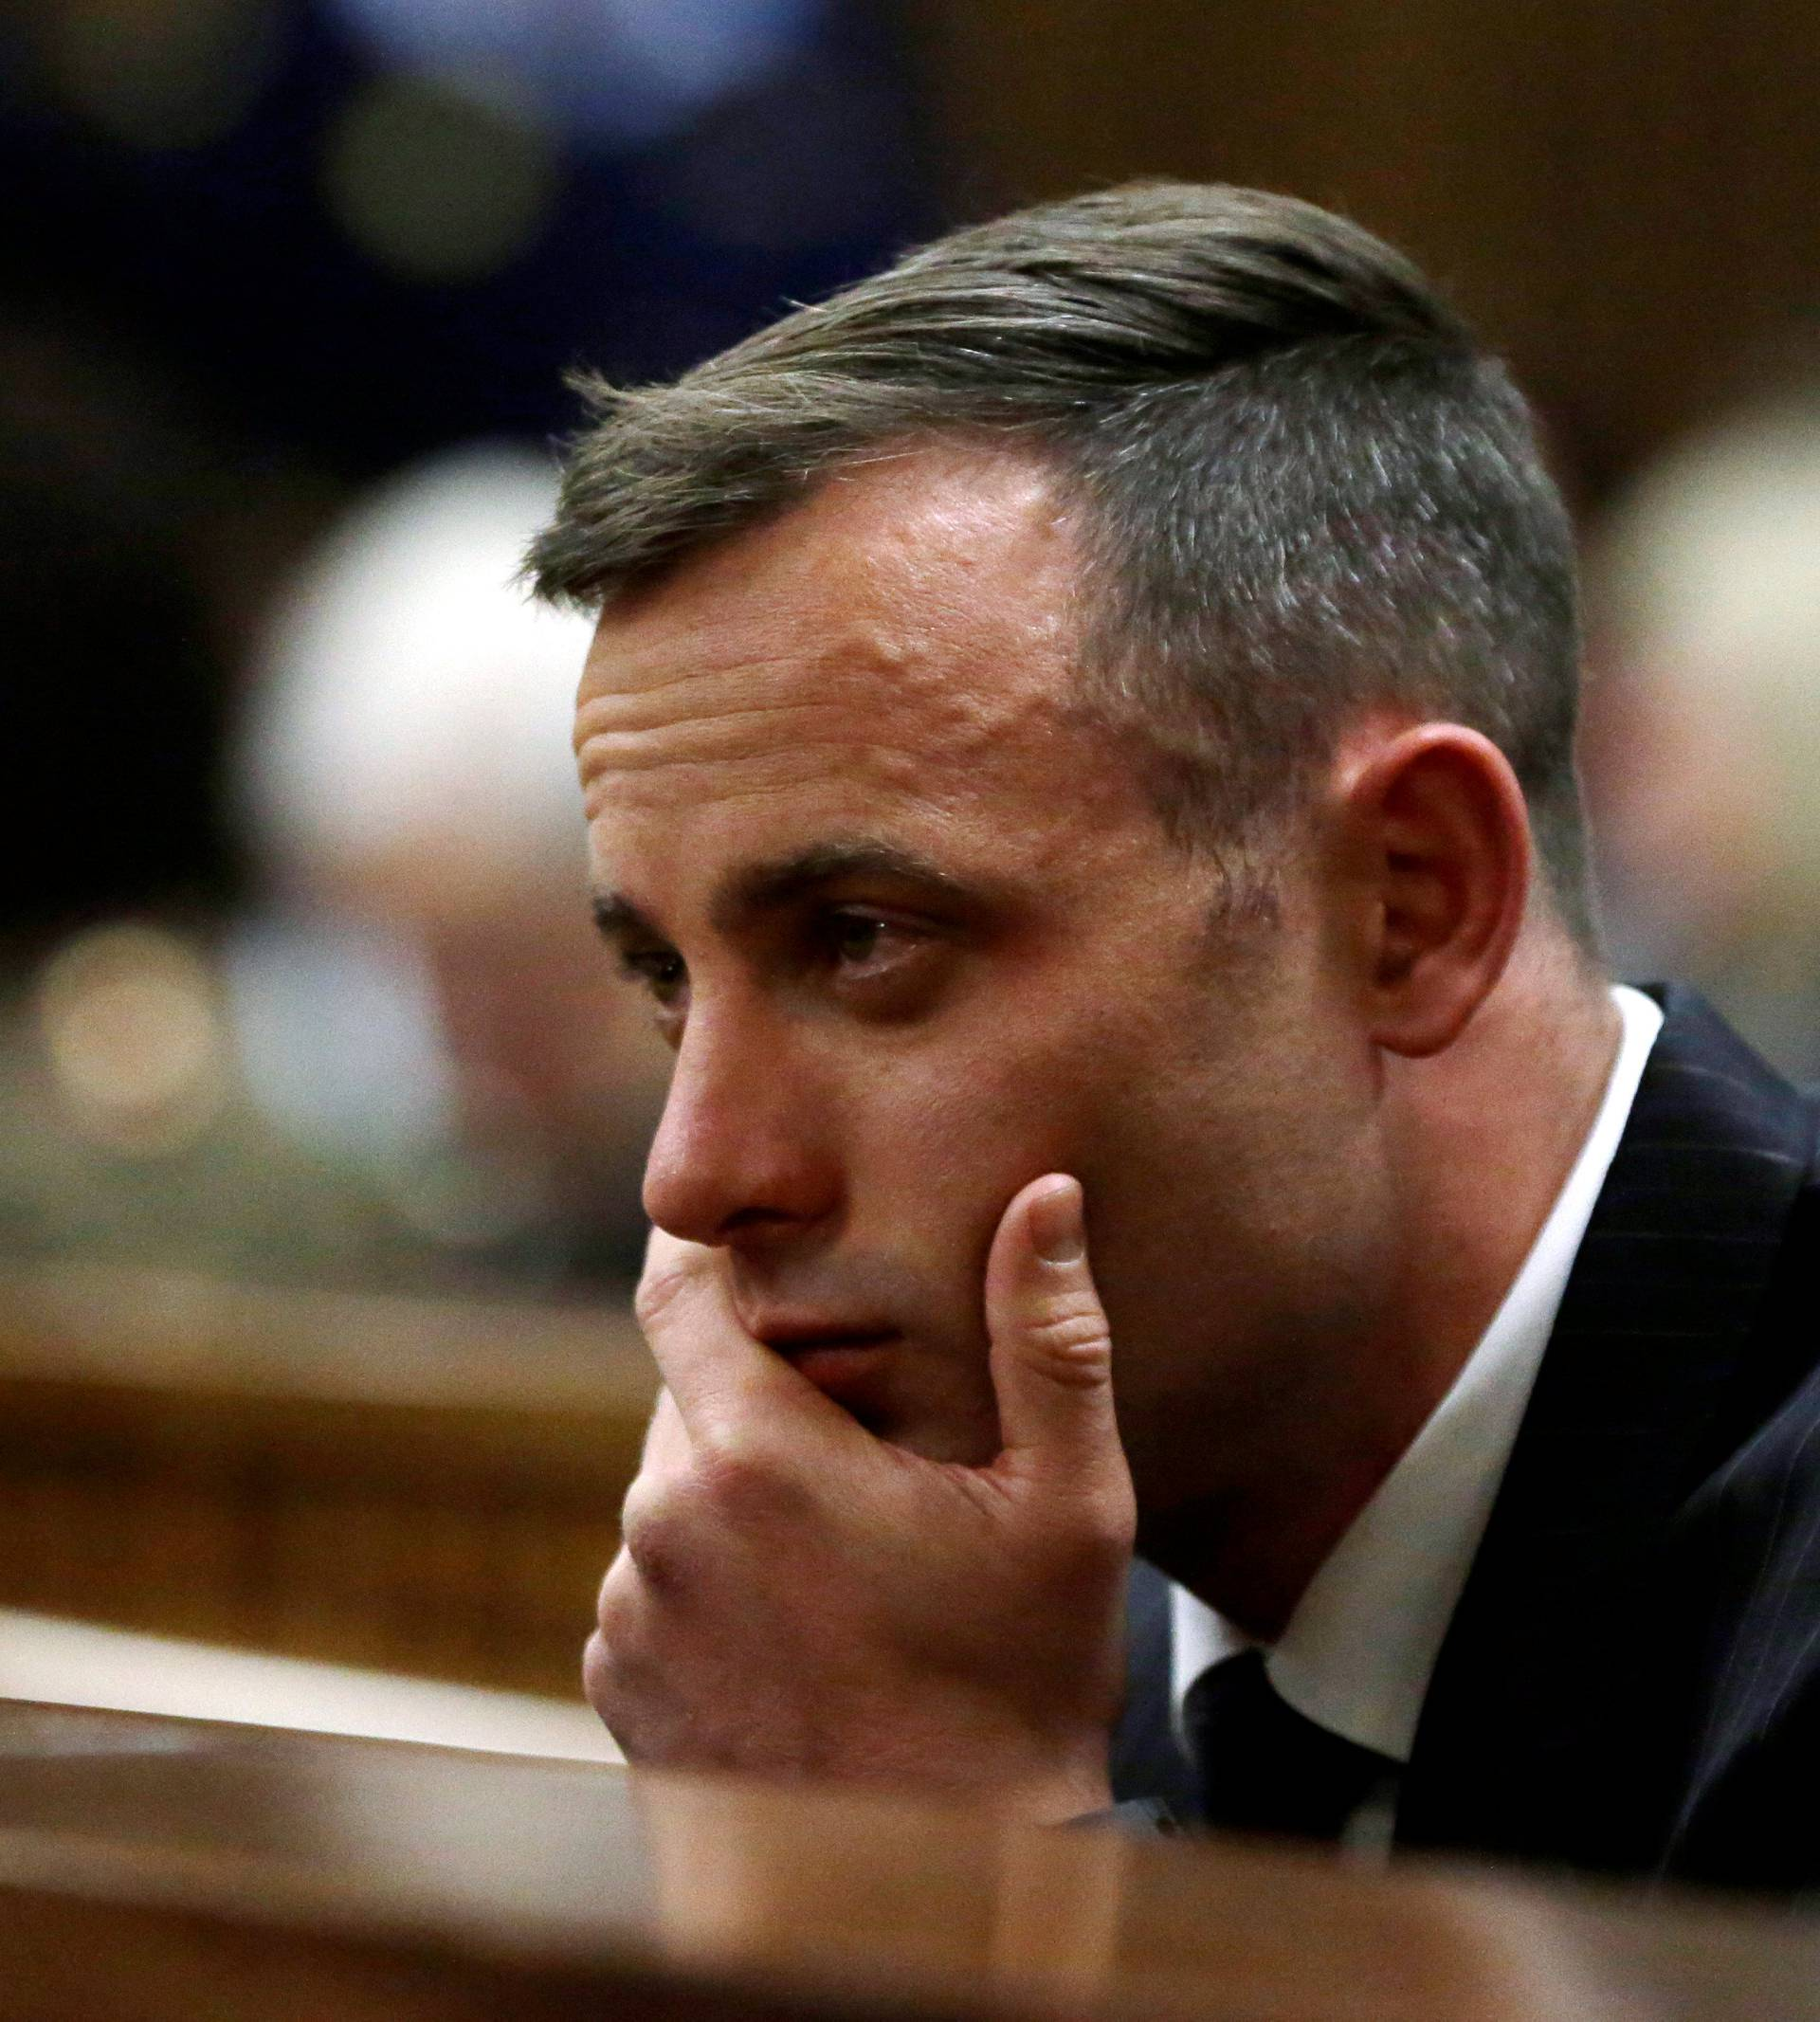 Former Paralympian Oscar Pistorius attends the sentencing for the murder of Reeva Steenkamp at the Pretoria High Court